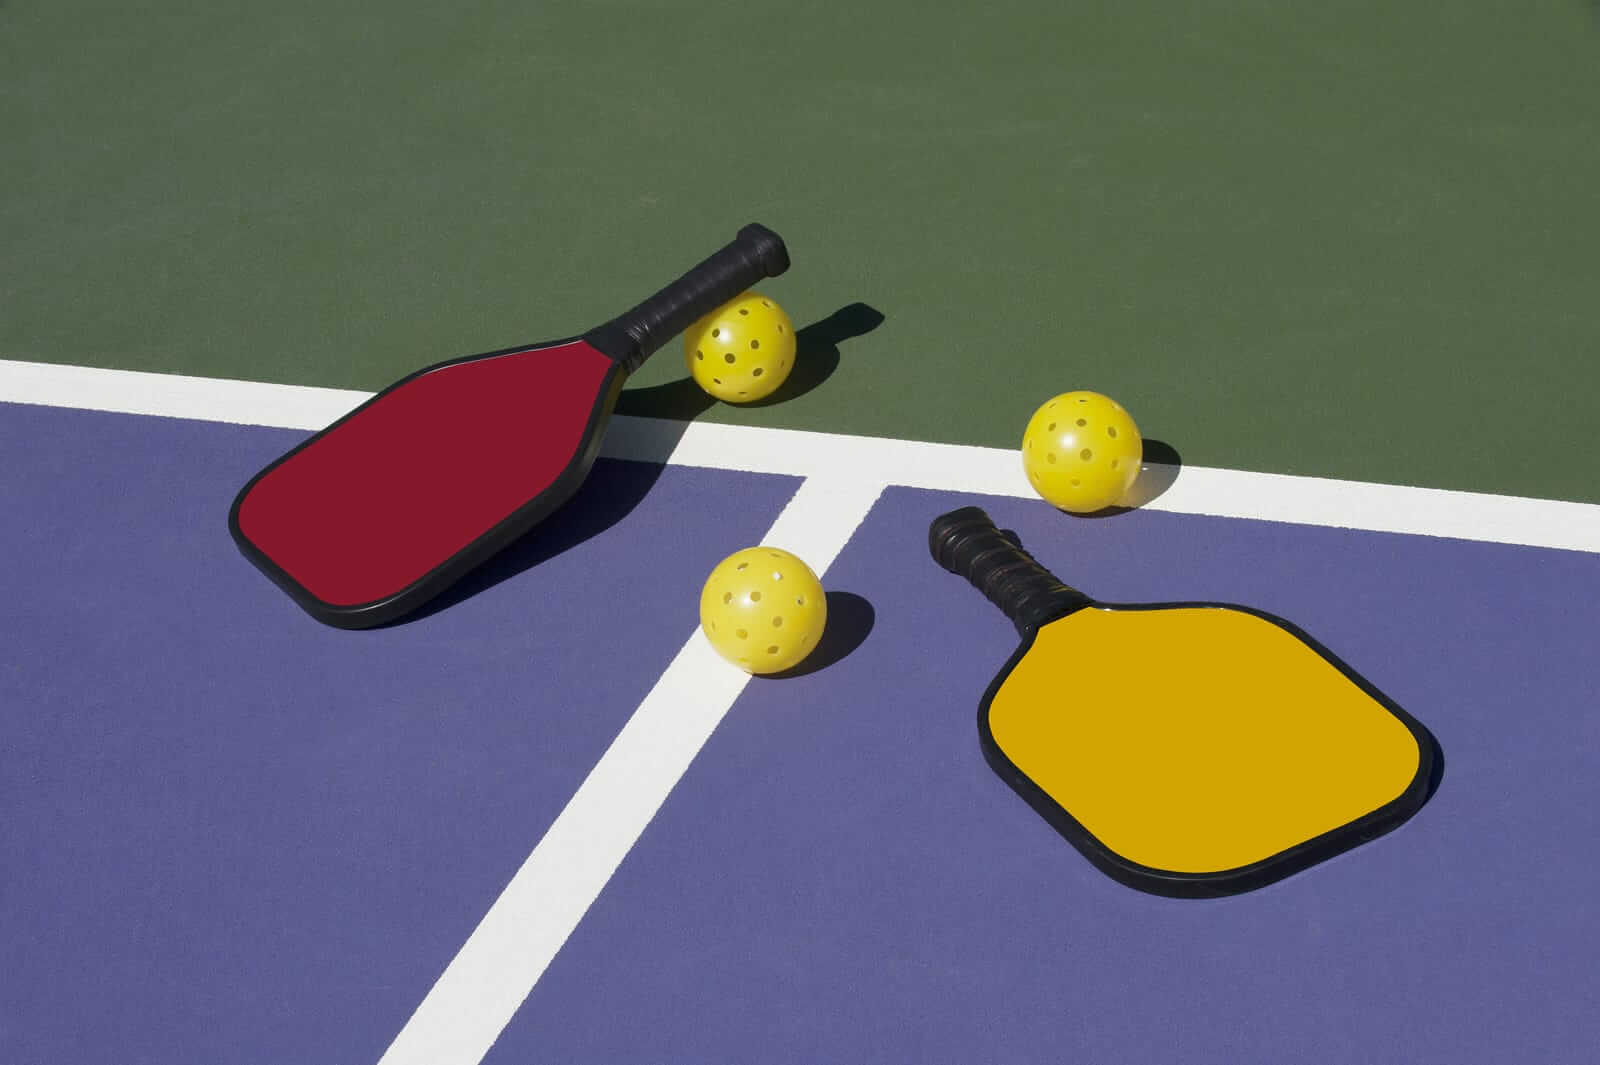 Pickleball Paddles And Balls On The Court